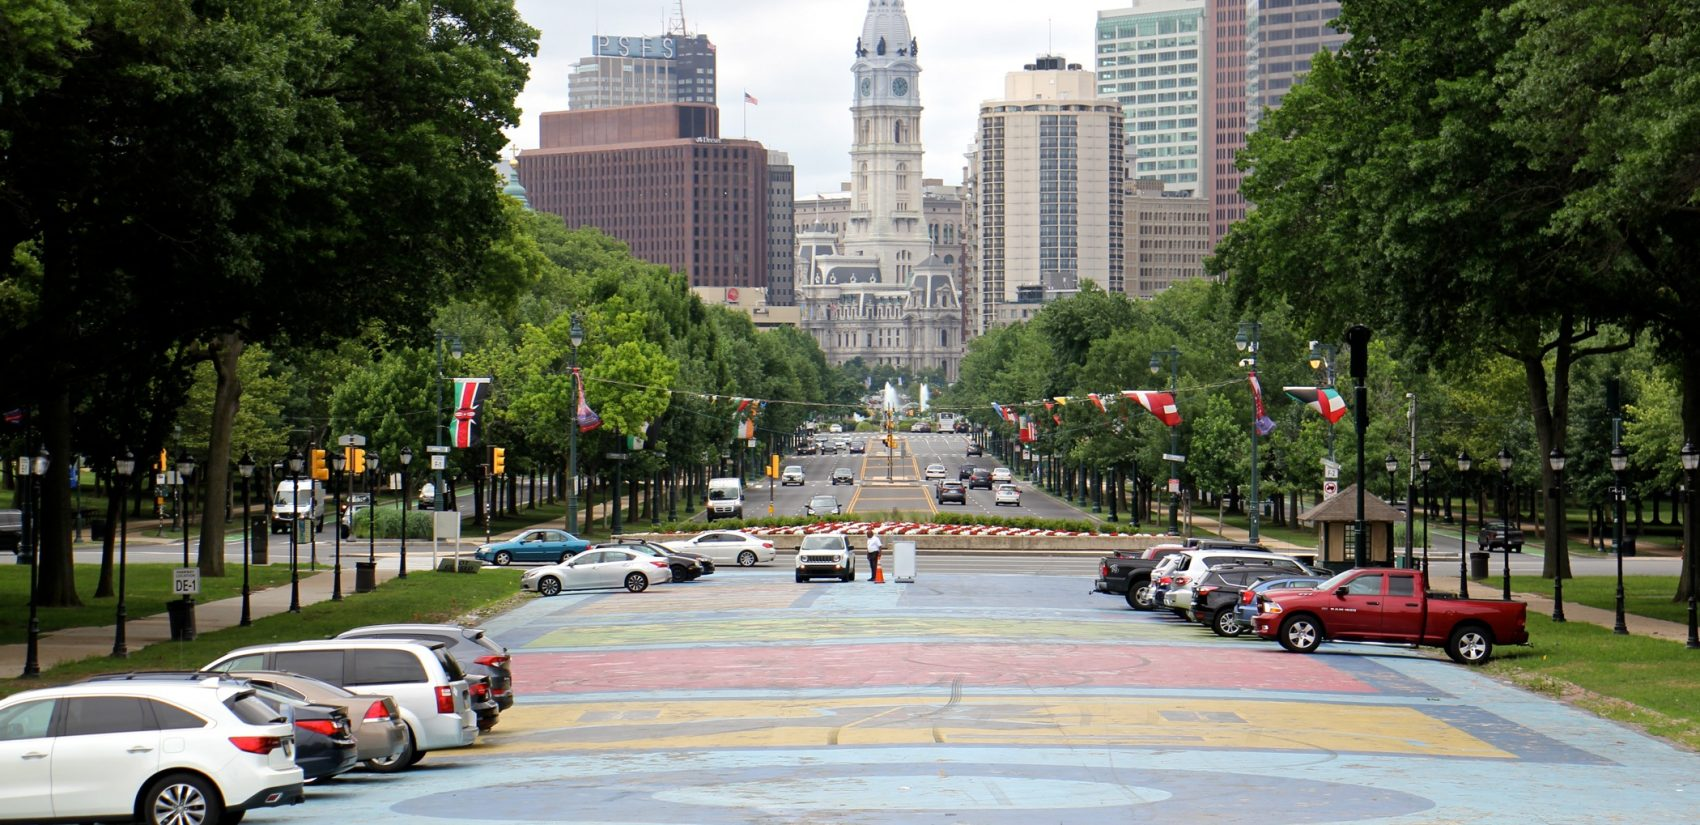 Looking east toward City Hall from Eakins Oval.